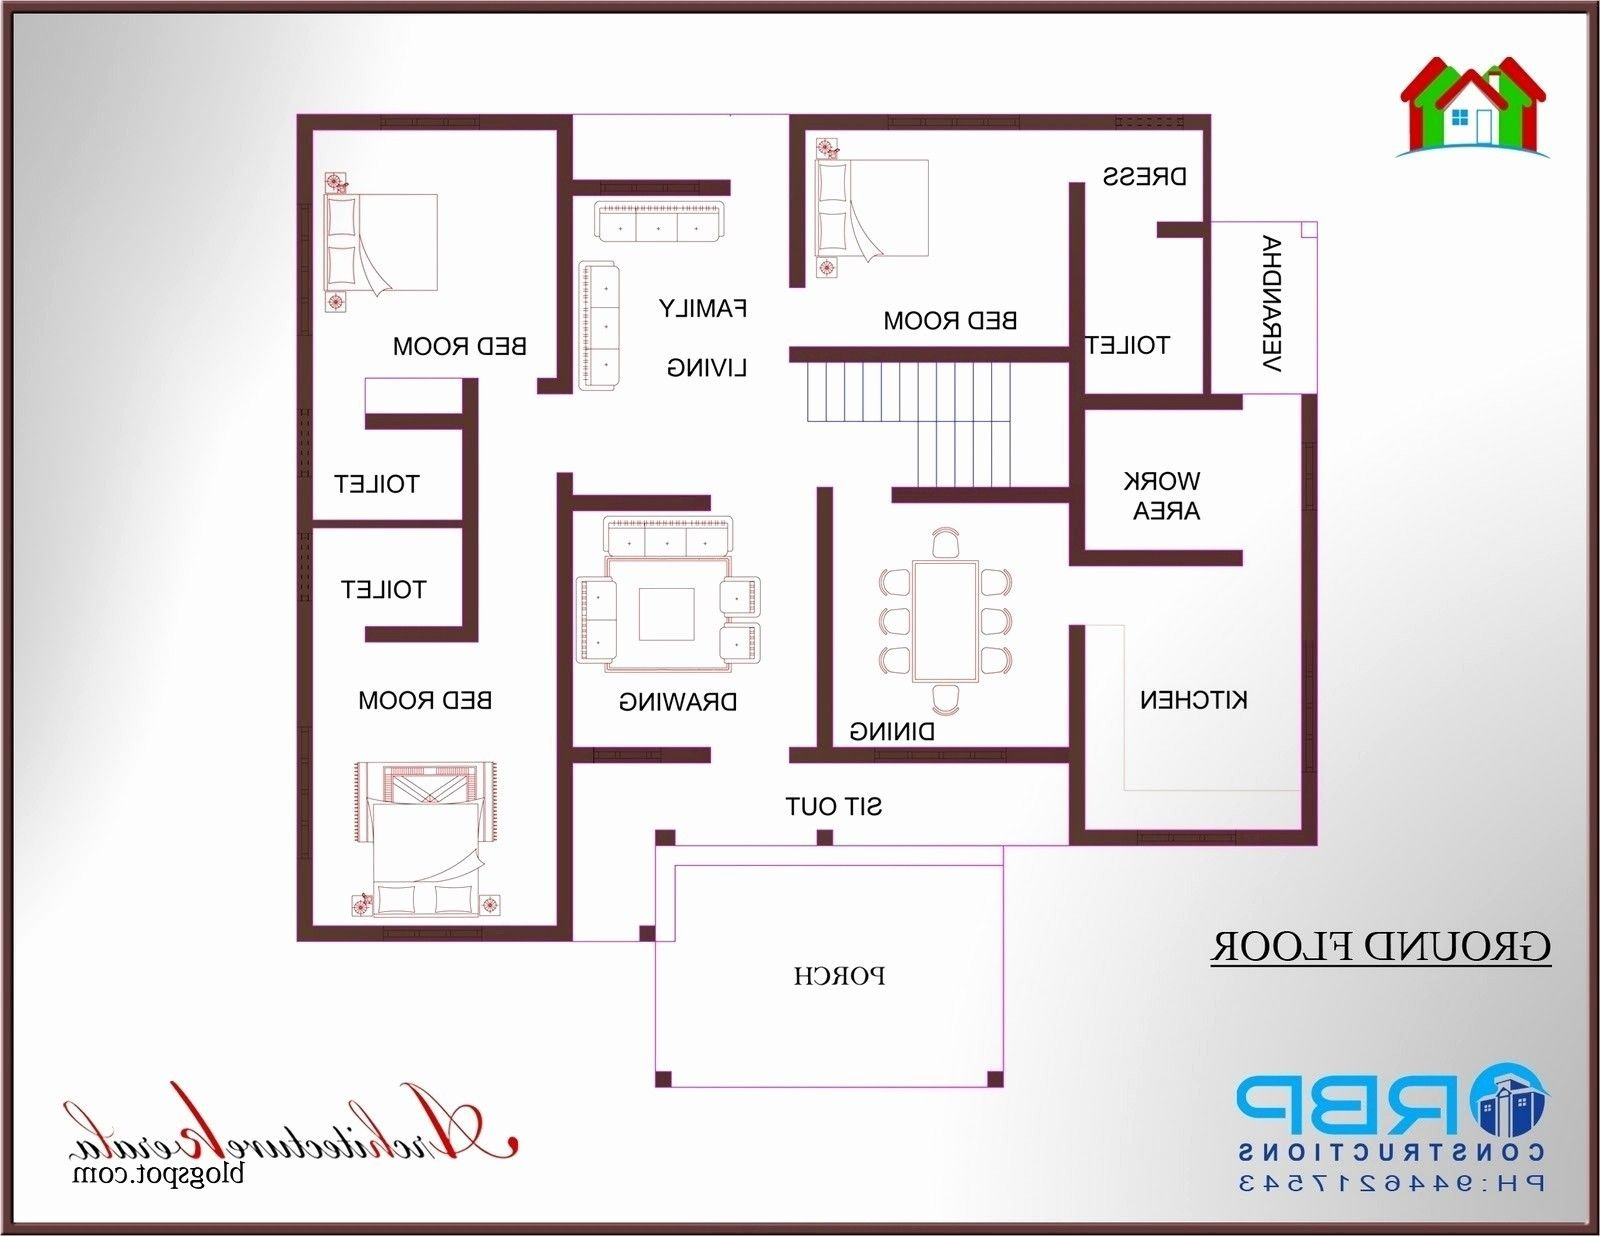 Lovely bedroom house plans kerala style sq feet awesome ft also pin by mutsai mvemve on ensuite rh pinterest